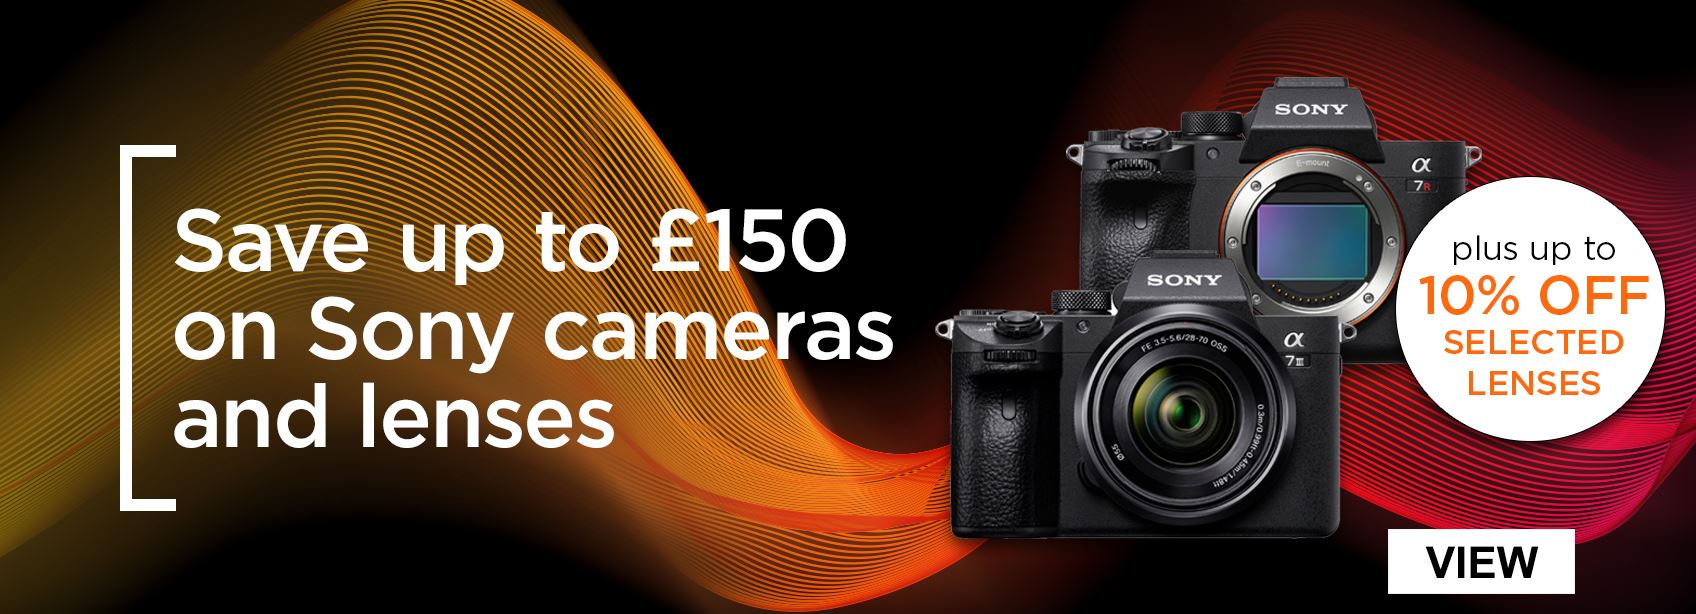 Save up to £150 on Sony cameras and lenses